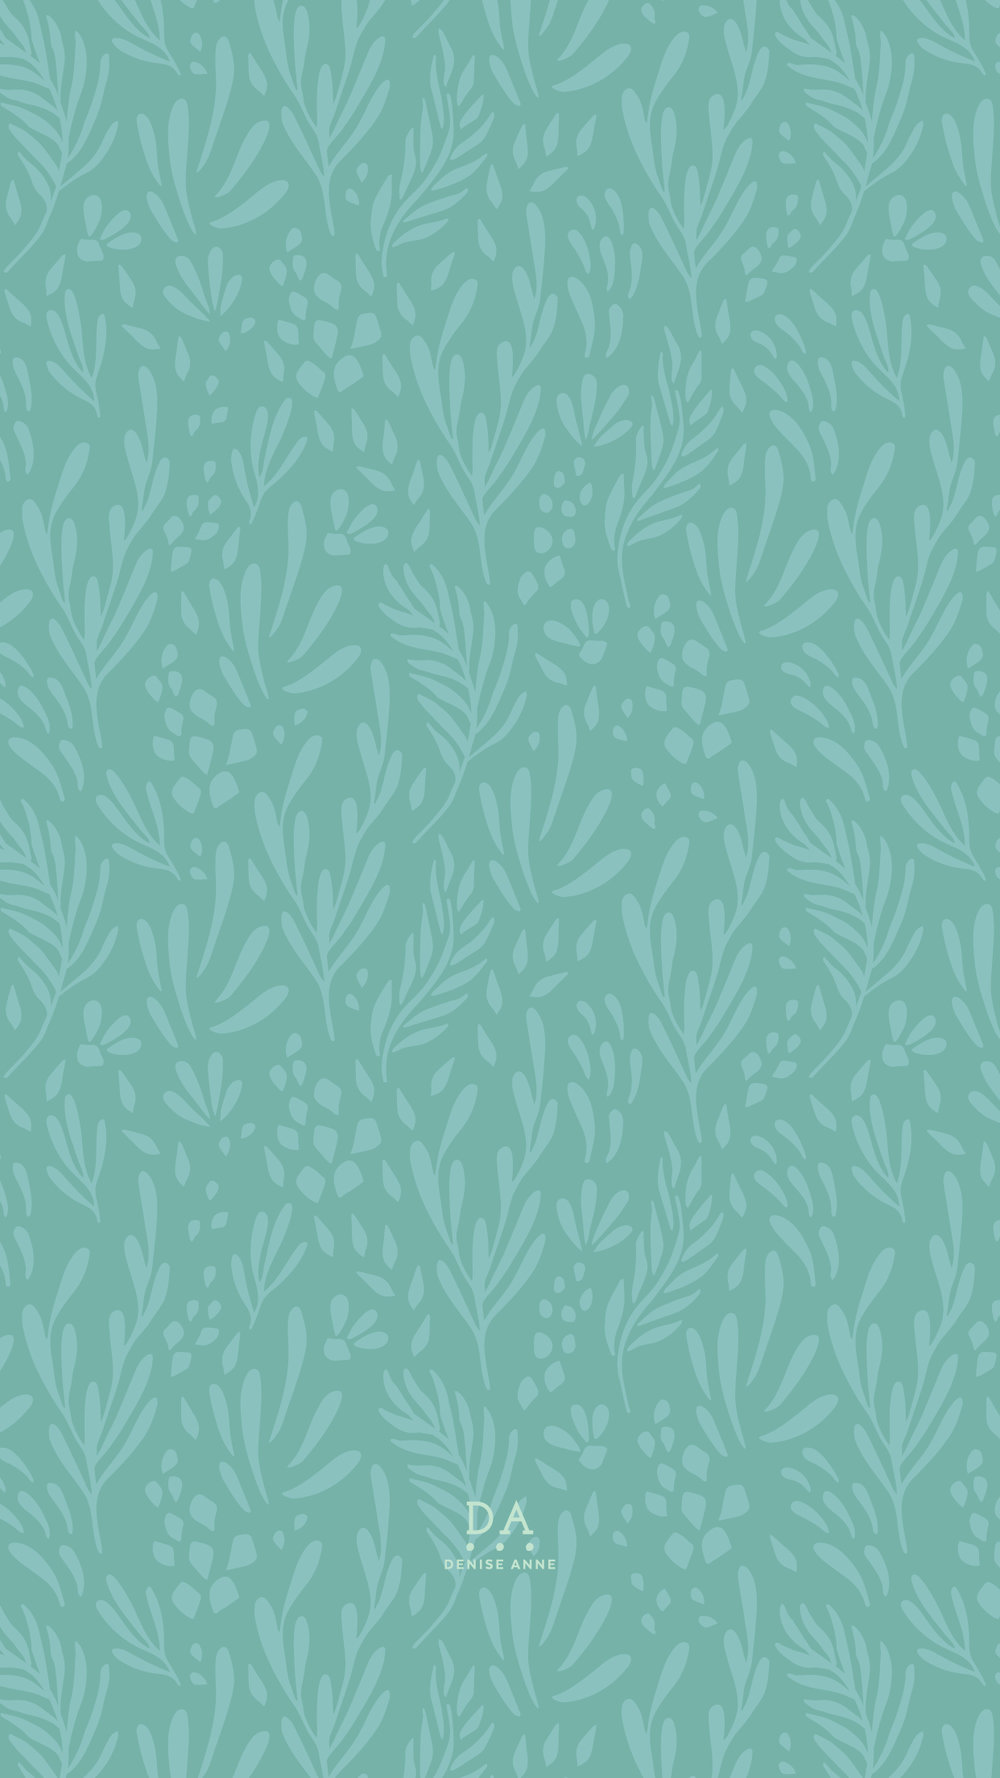 Turquoise Greenery - click for download links